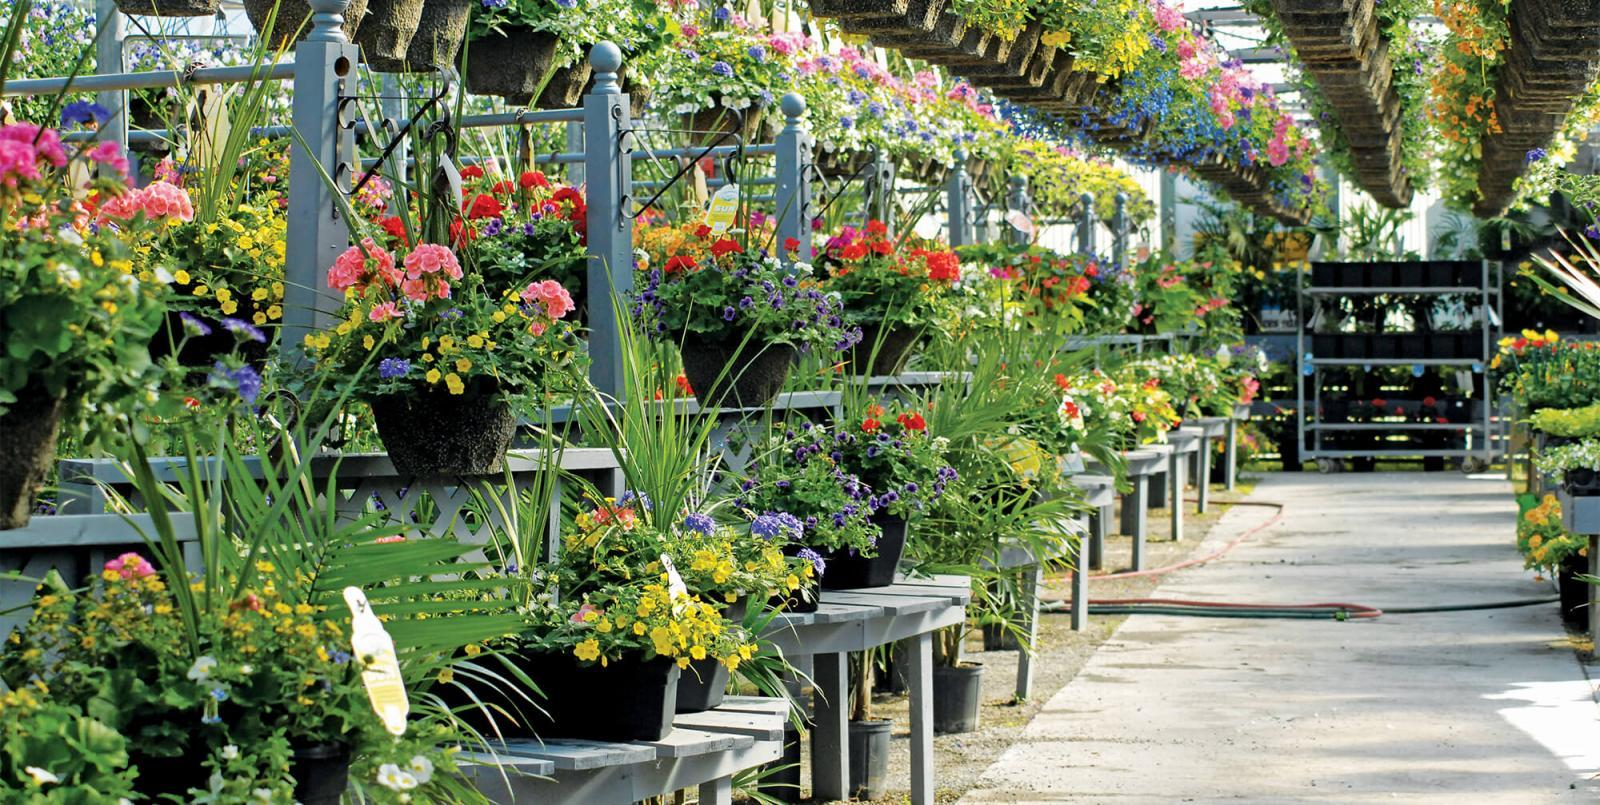 Providing quality plants in a wide selection with great customer service will keep the independent garden centre successful.